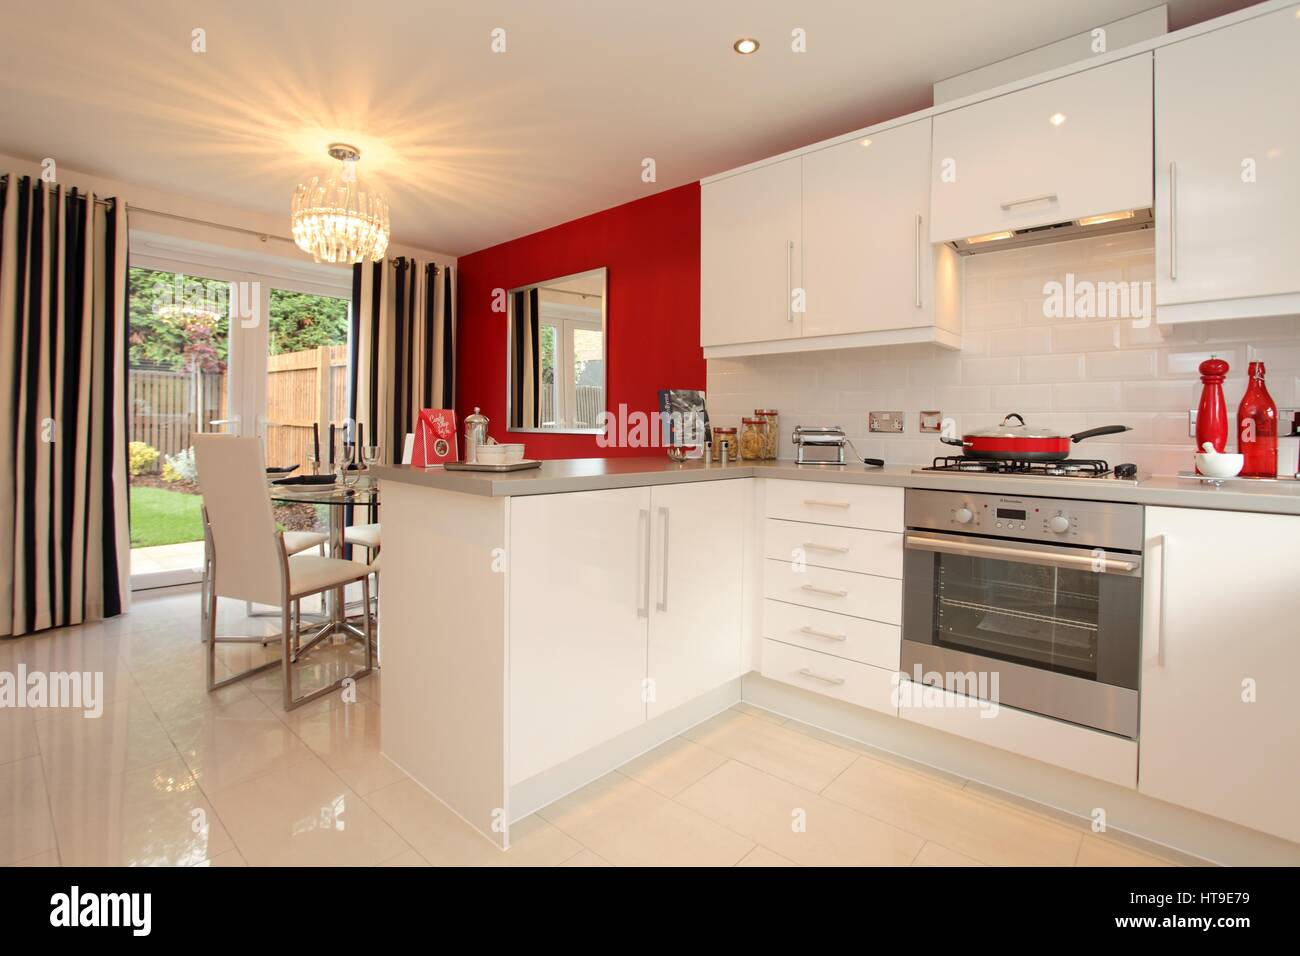 Home interior kitchen modern home new build kitchen diner dining areawhite units red feature wall